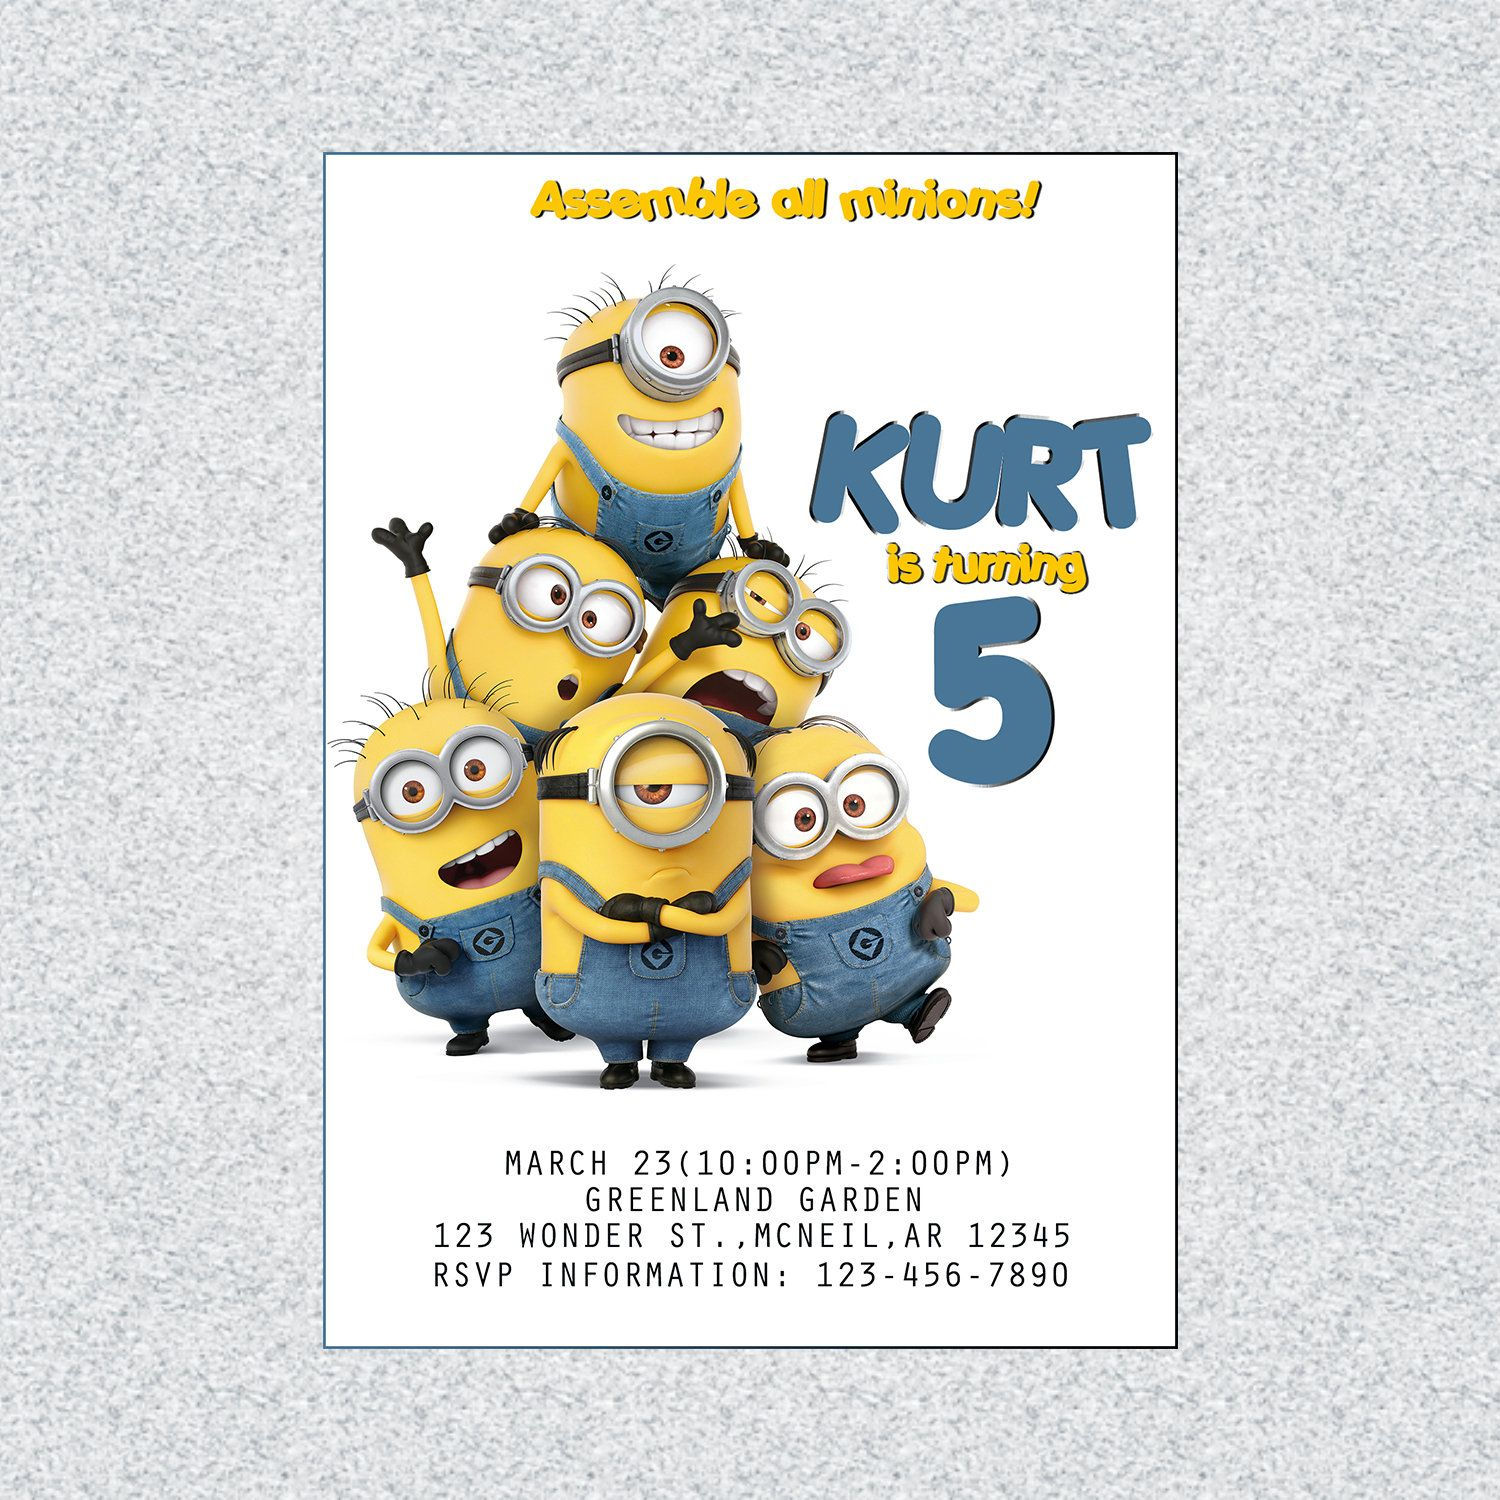 image regarding Minions Printable Invitations named Minions Birthday Invitation, Minions Birthday Card, Minions